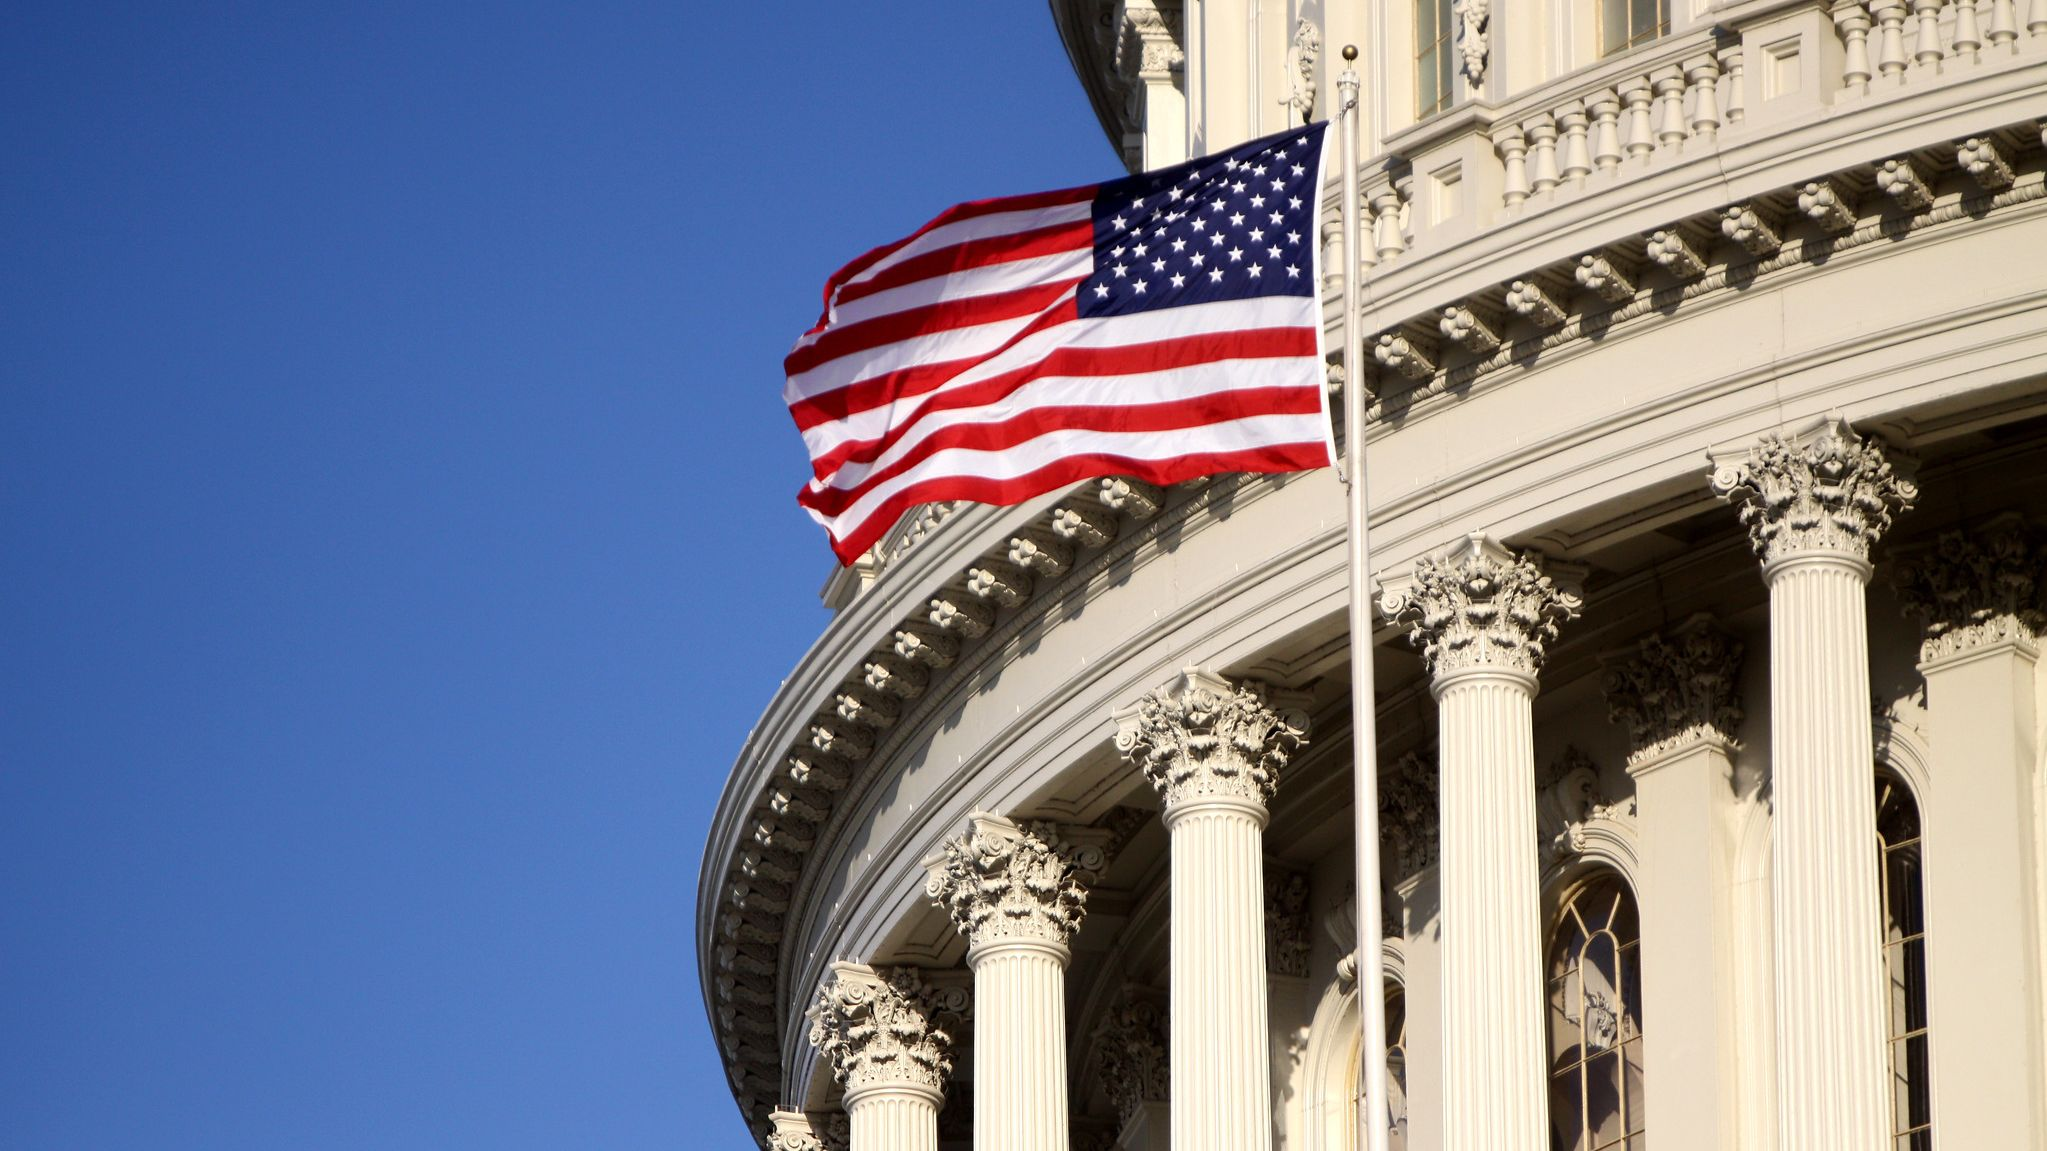 A User's Guide to the Branches of U.S. Government